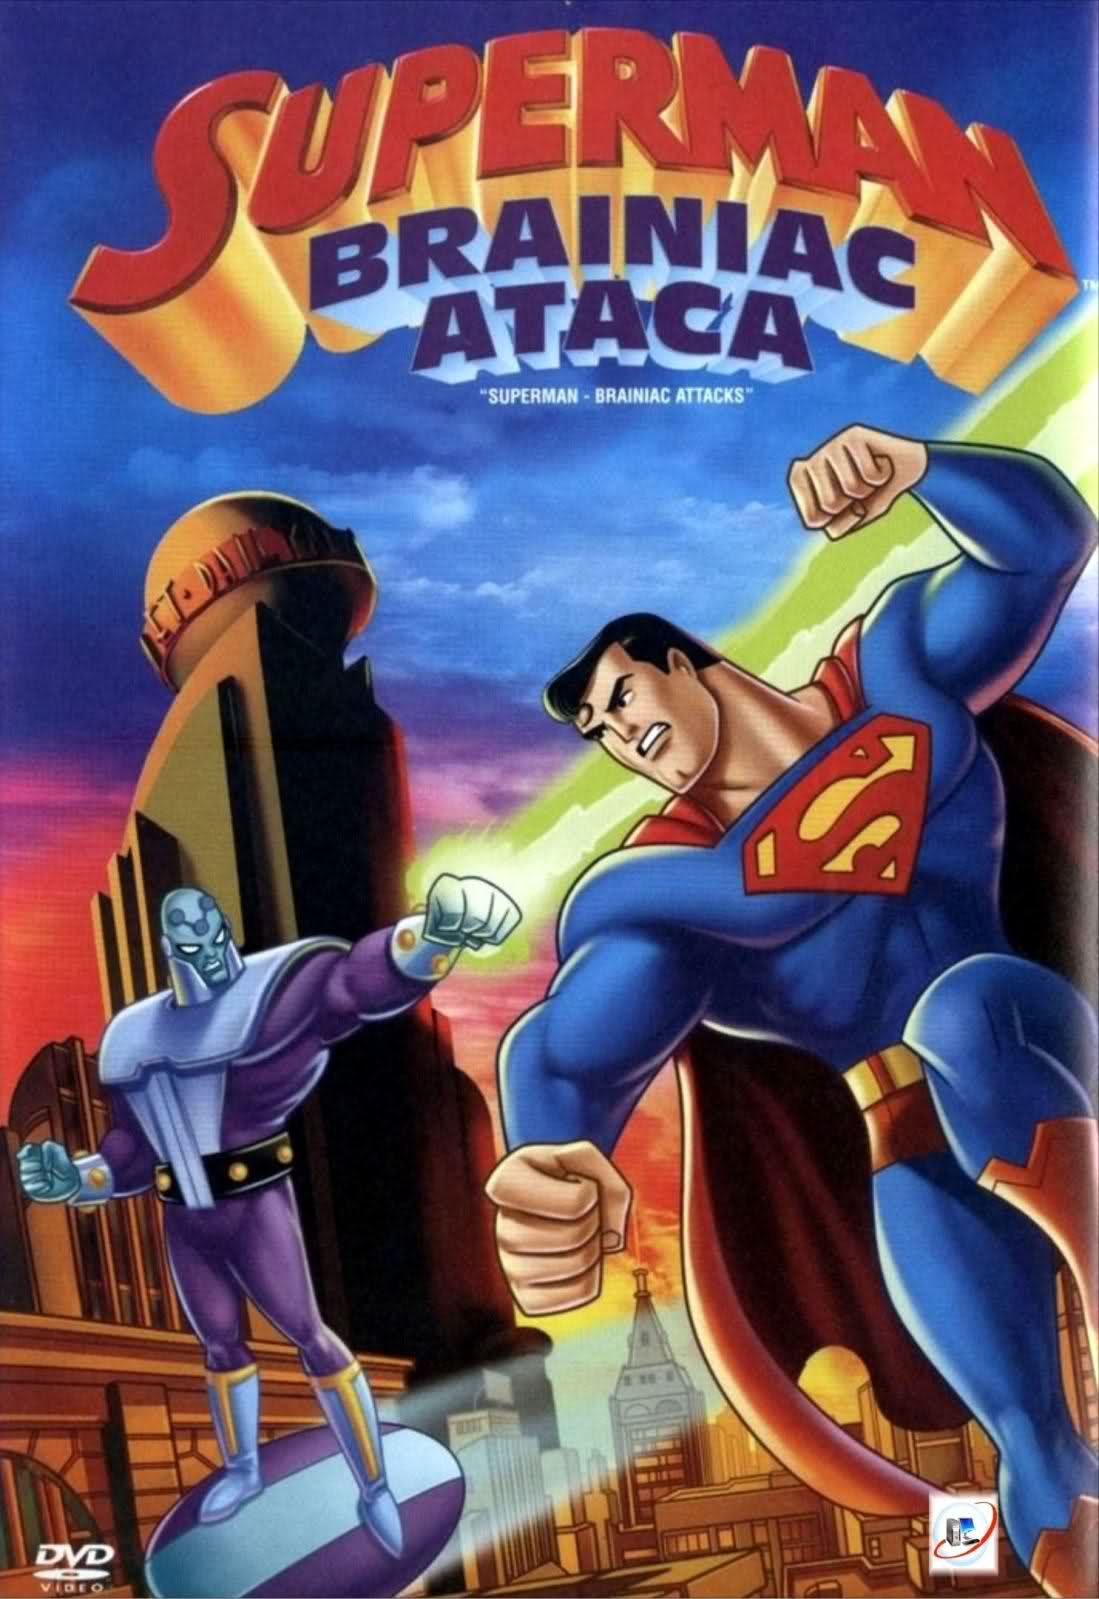 Superman: Brainiac Ataca – HD 720p